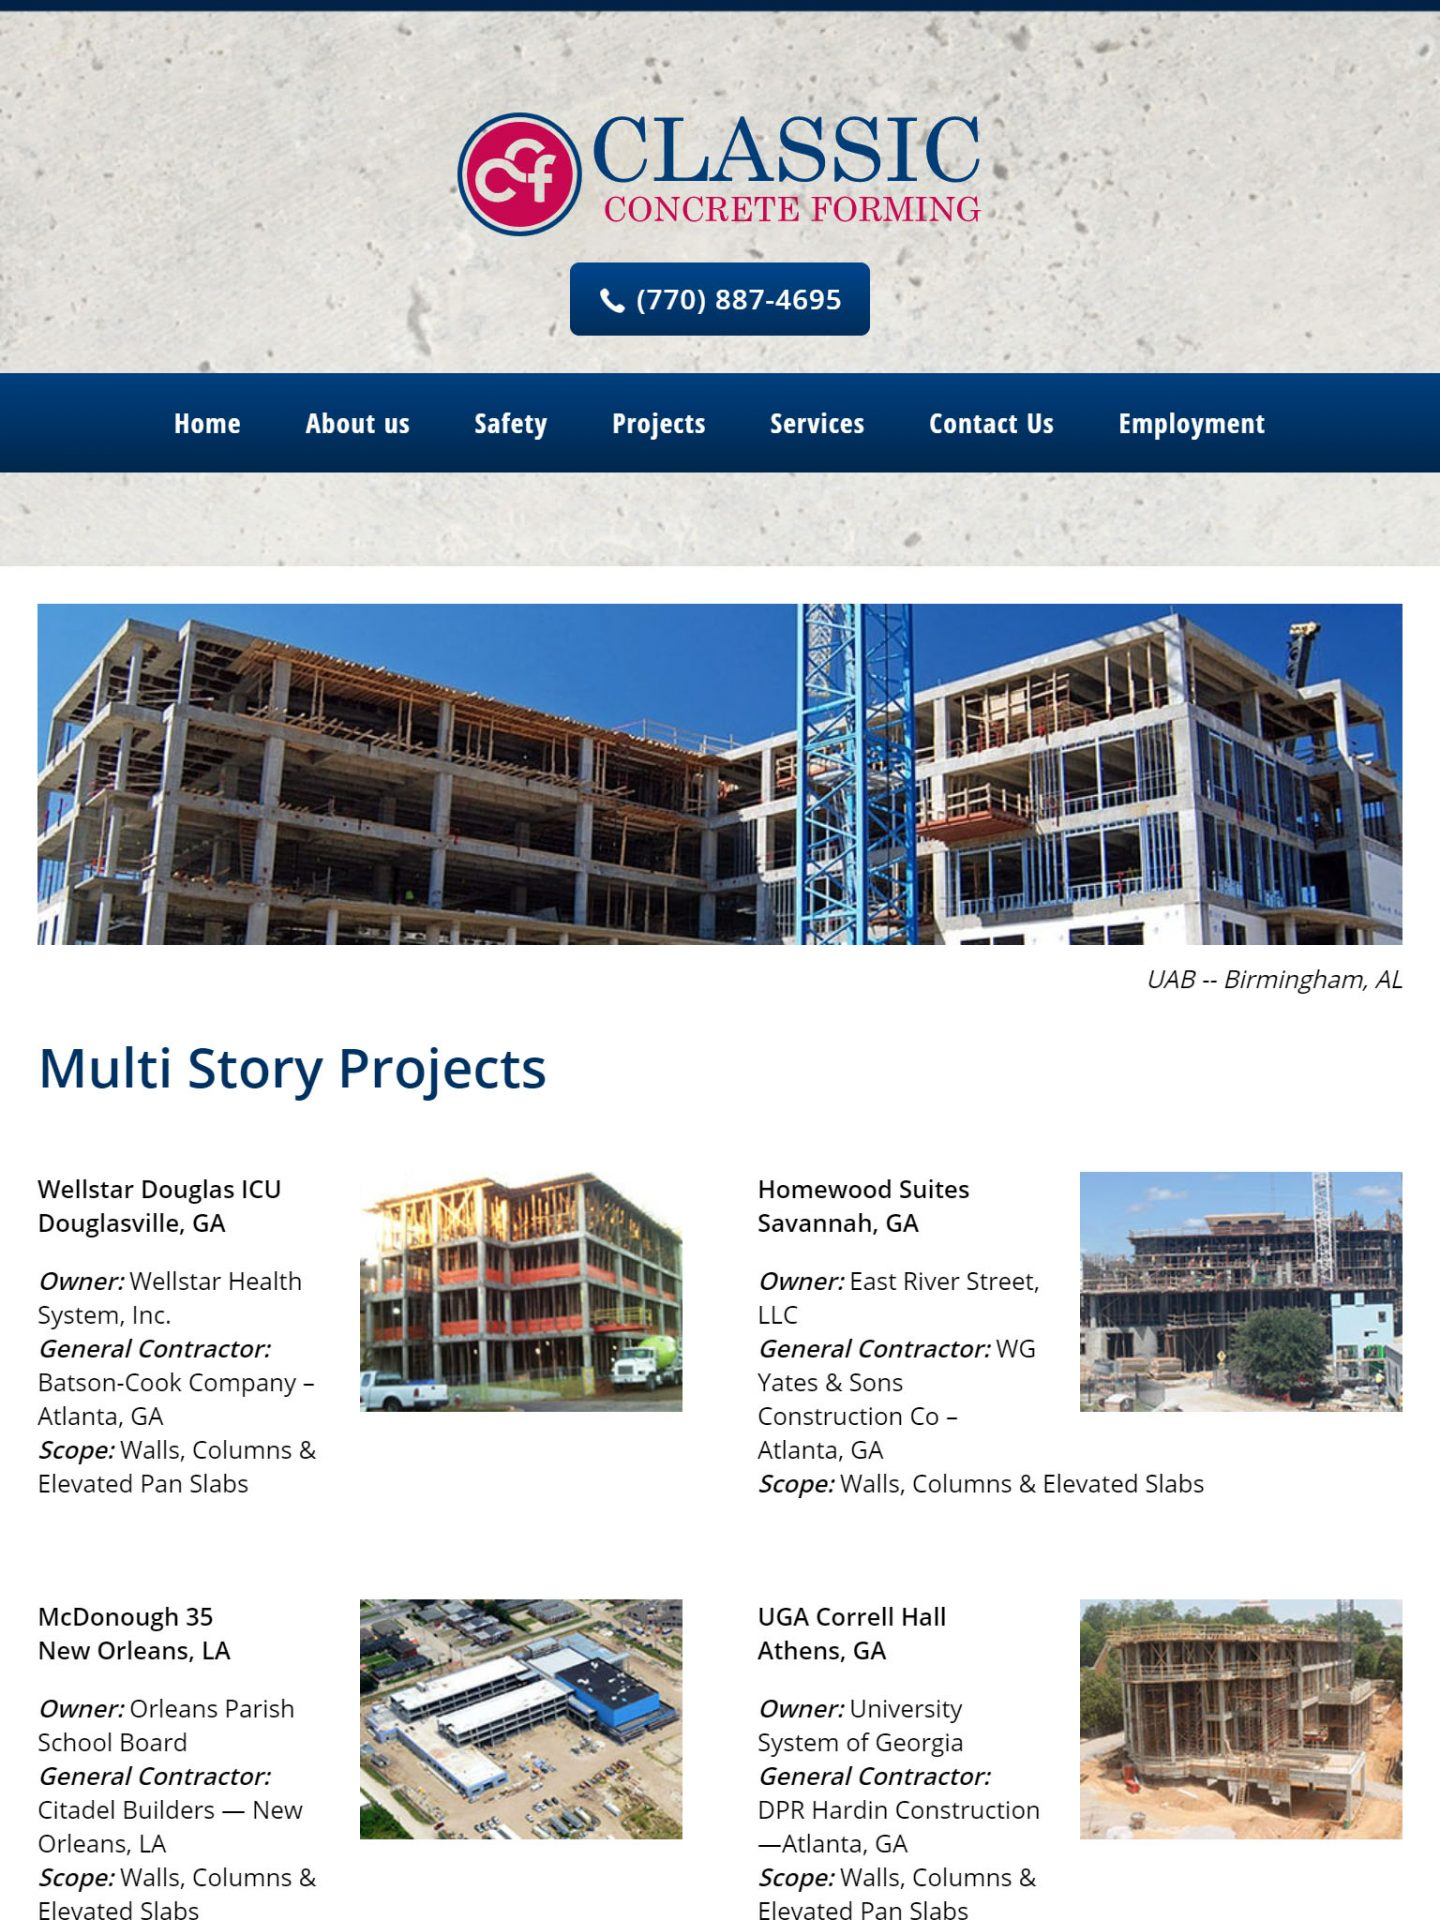 Classic Concrete Forming (Cumming) Tablet Web Design